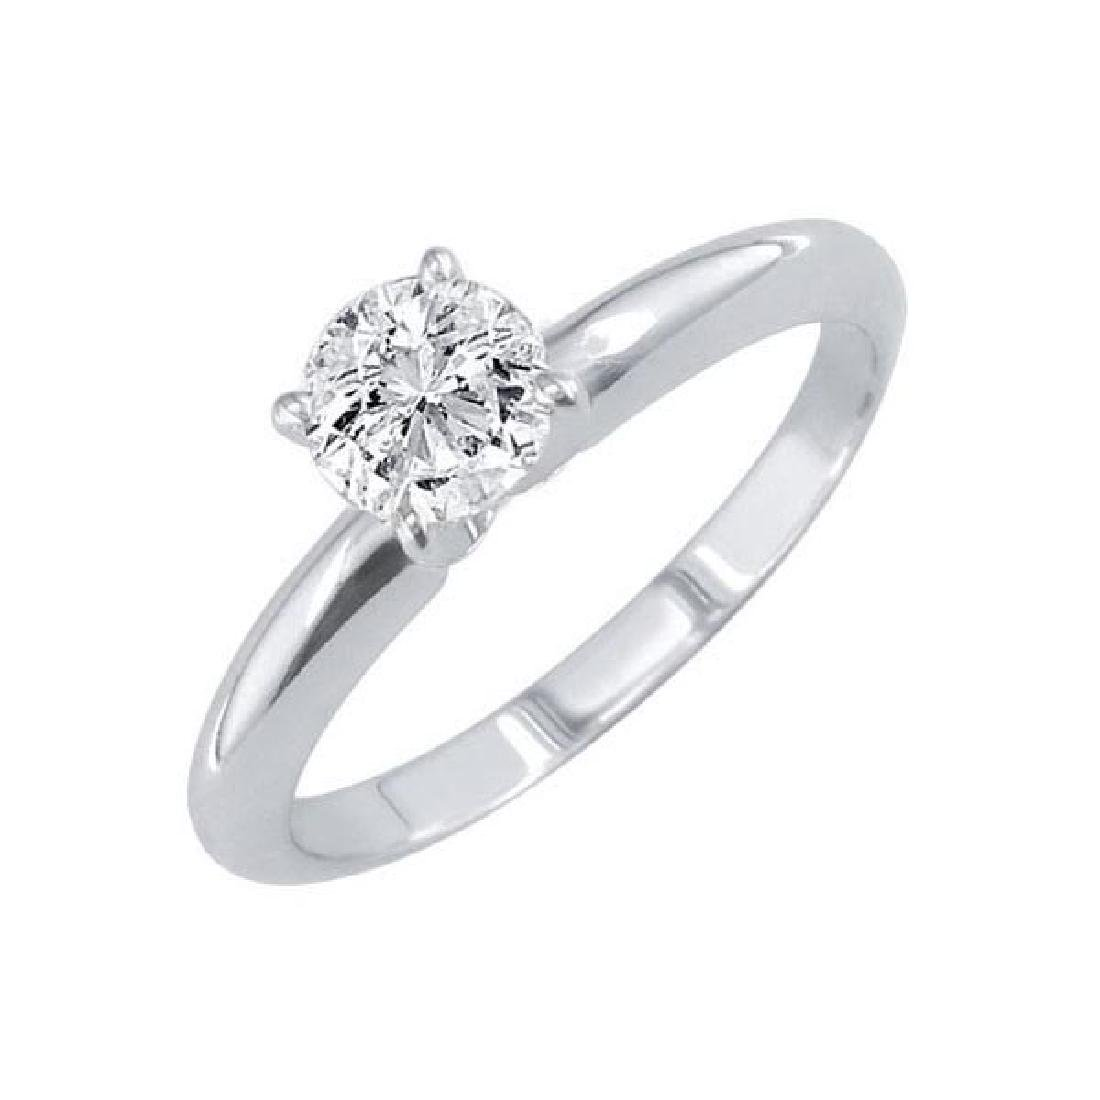 Certified 1 CTW Round Diamond Solitaire 14k Ring H/SI2